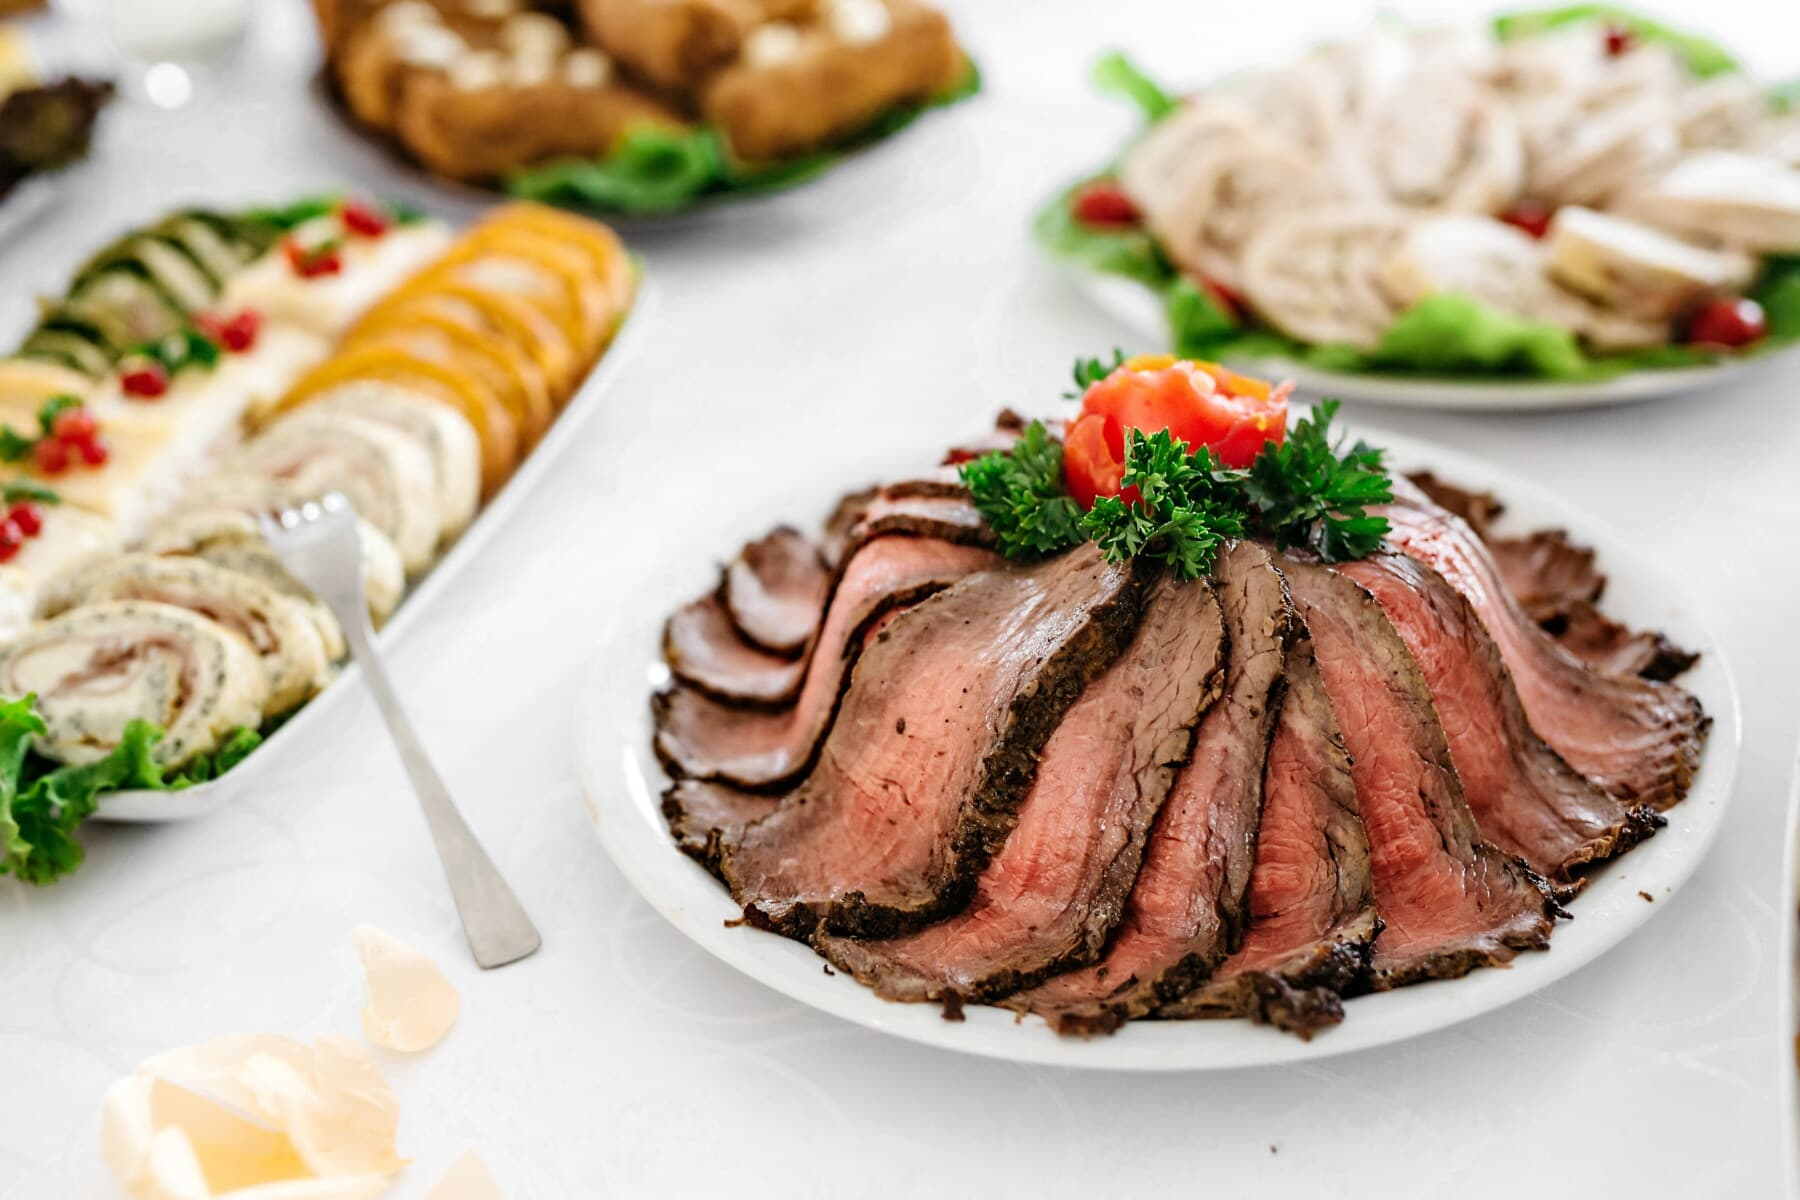 steak, beef, fillet, slices, delicious, dinner, course, dish, sauce, meal